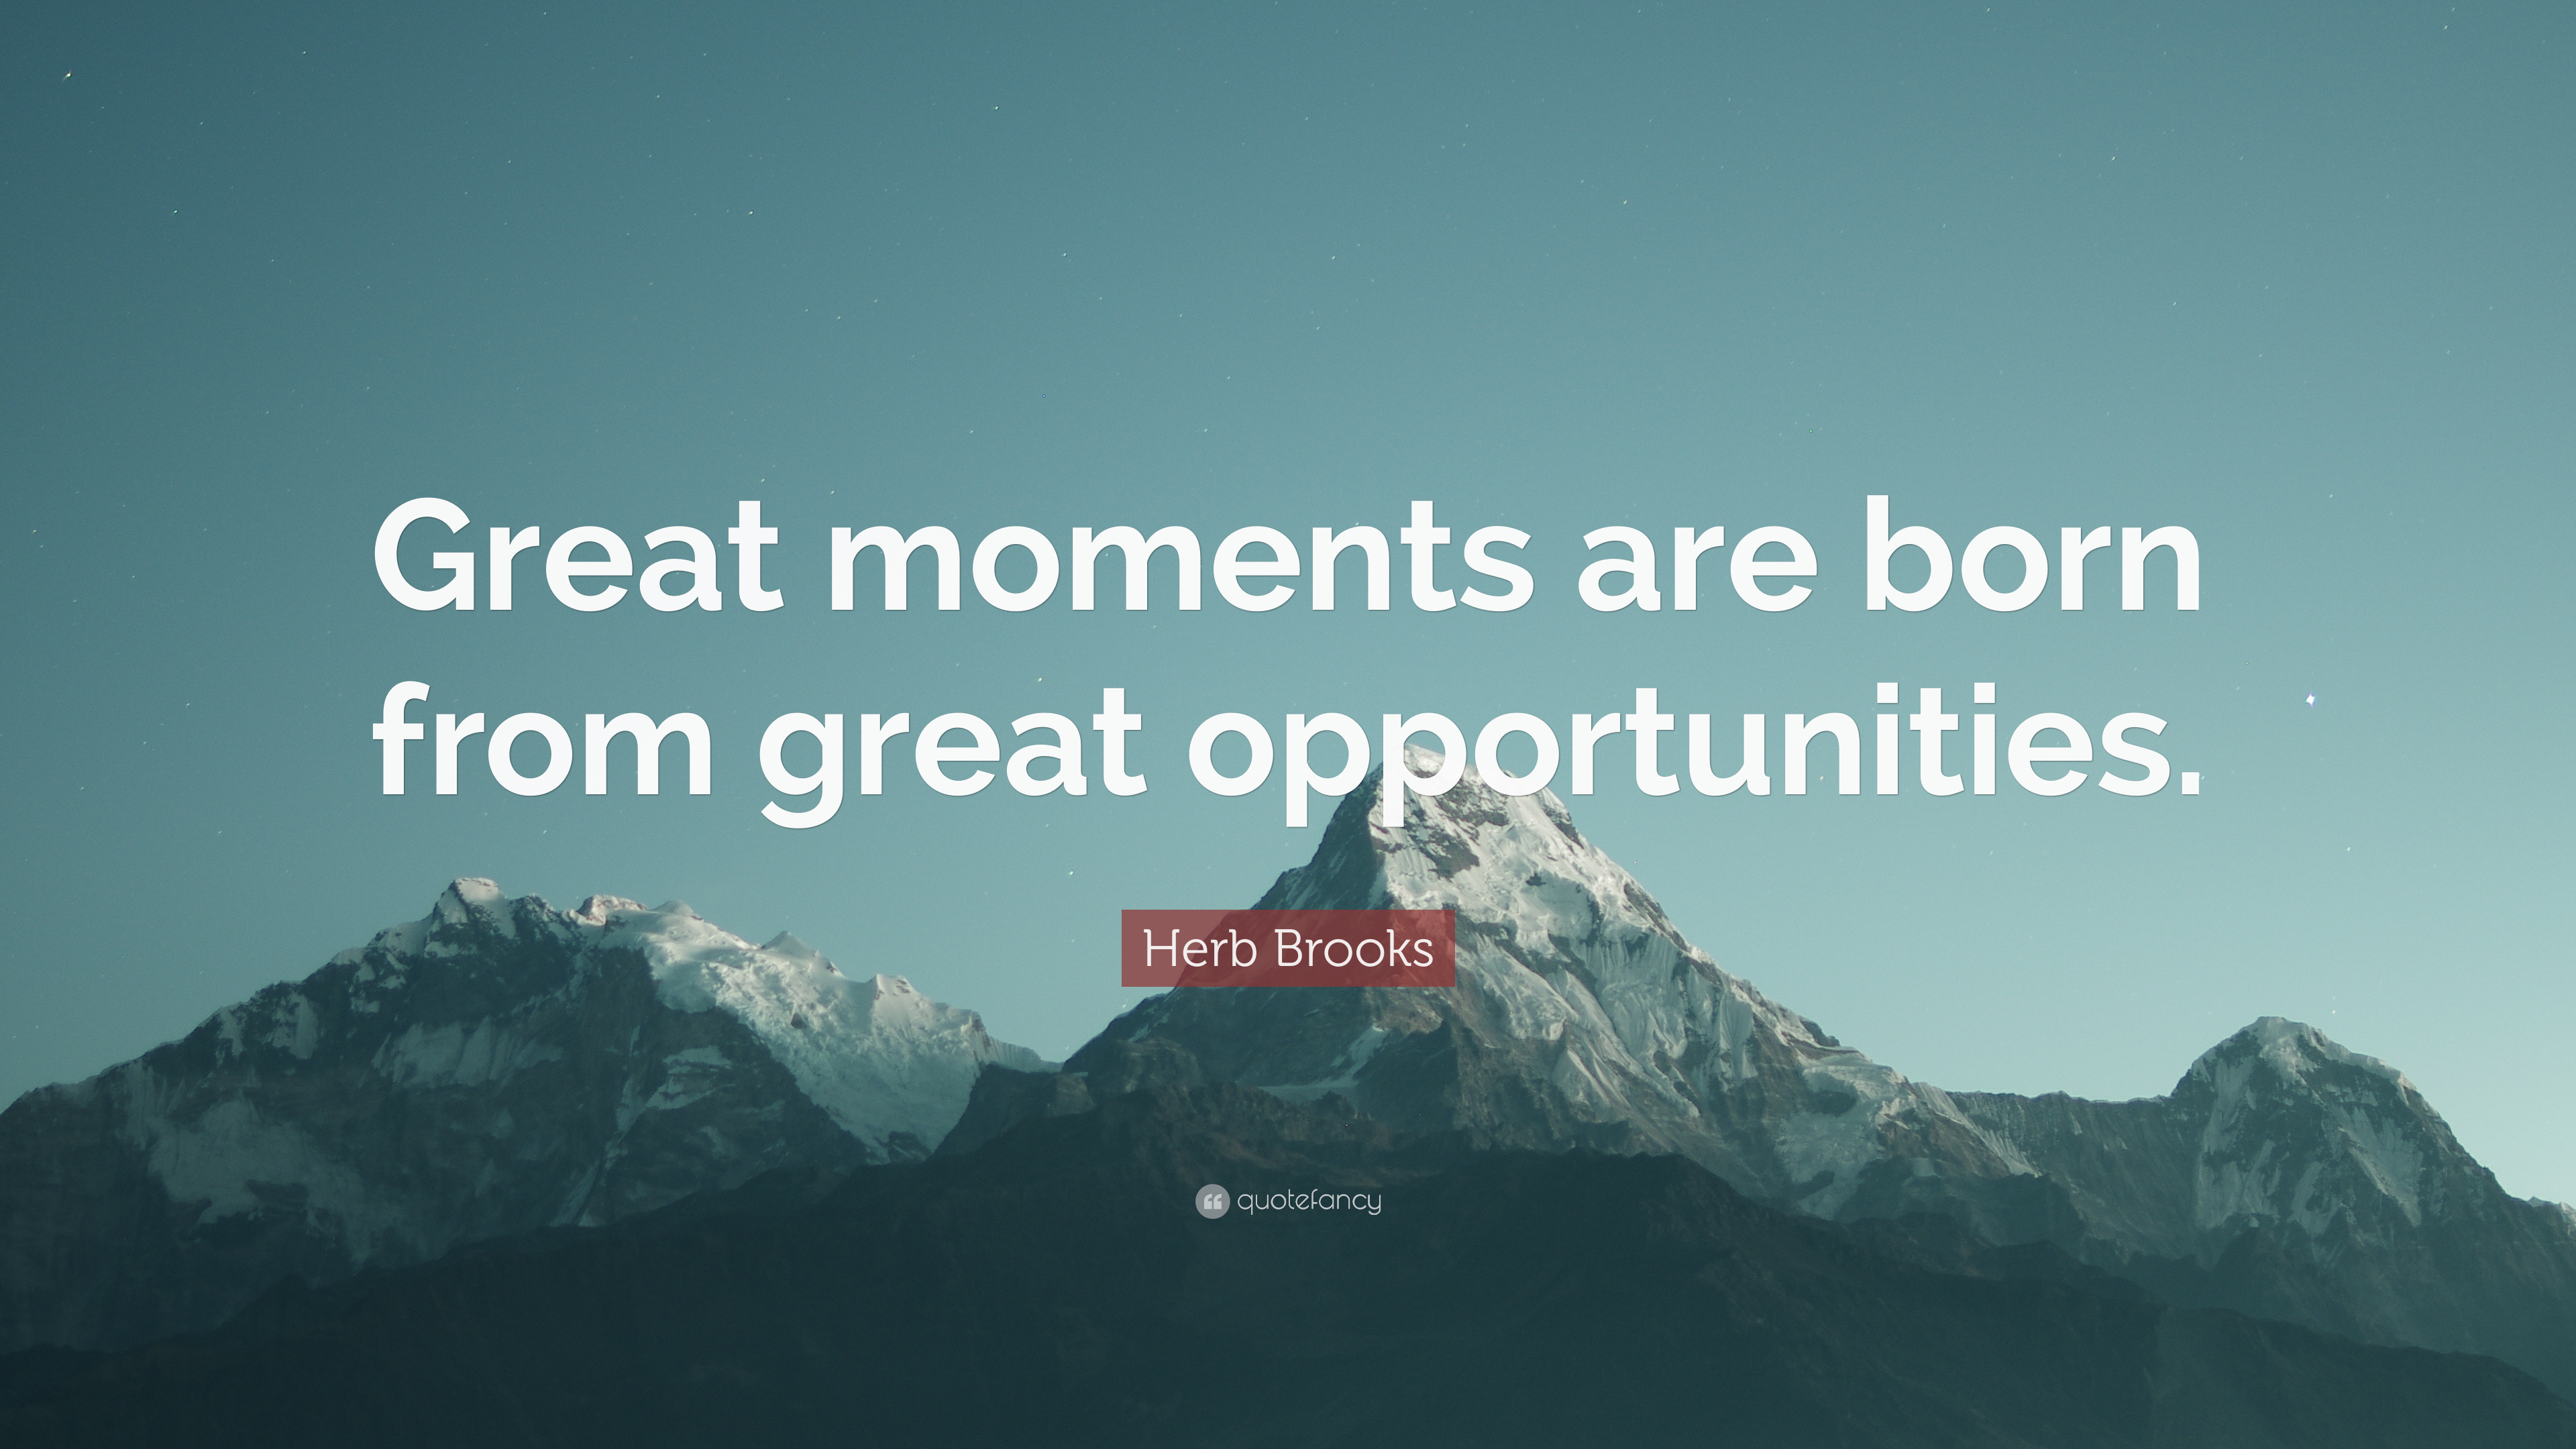 Herb Brooks Quote: U201cGreat Moments Are Born From Great Opportunities.u201d